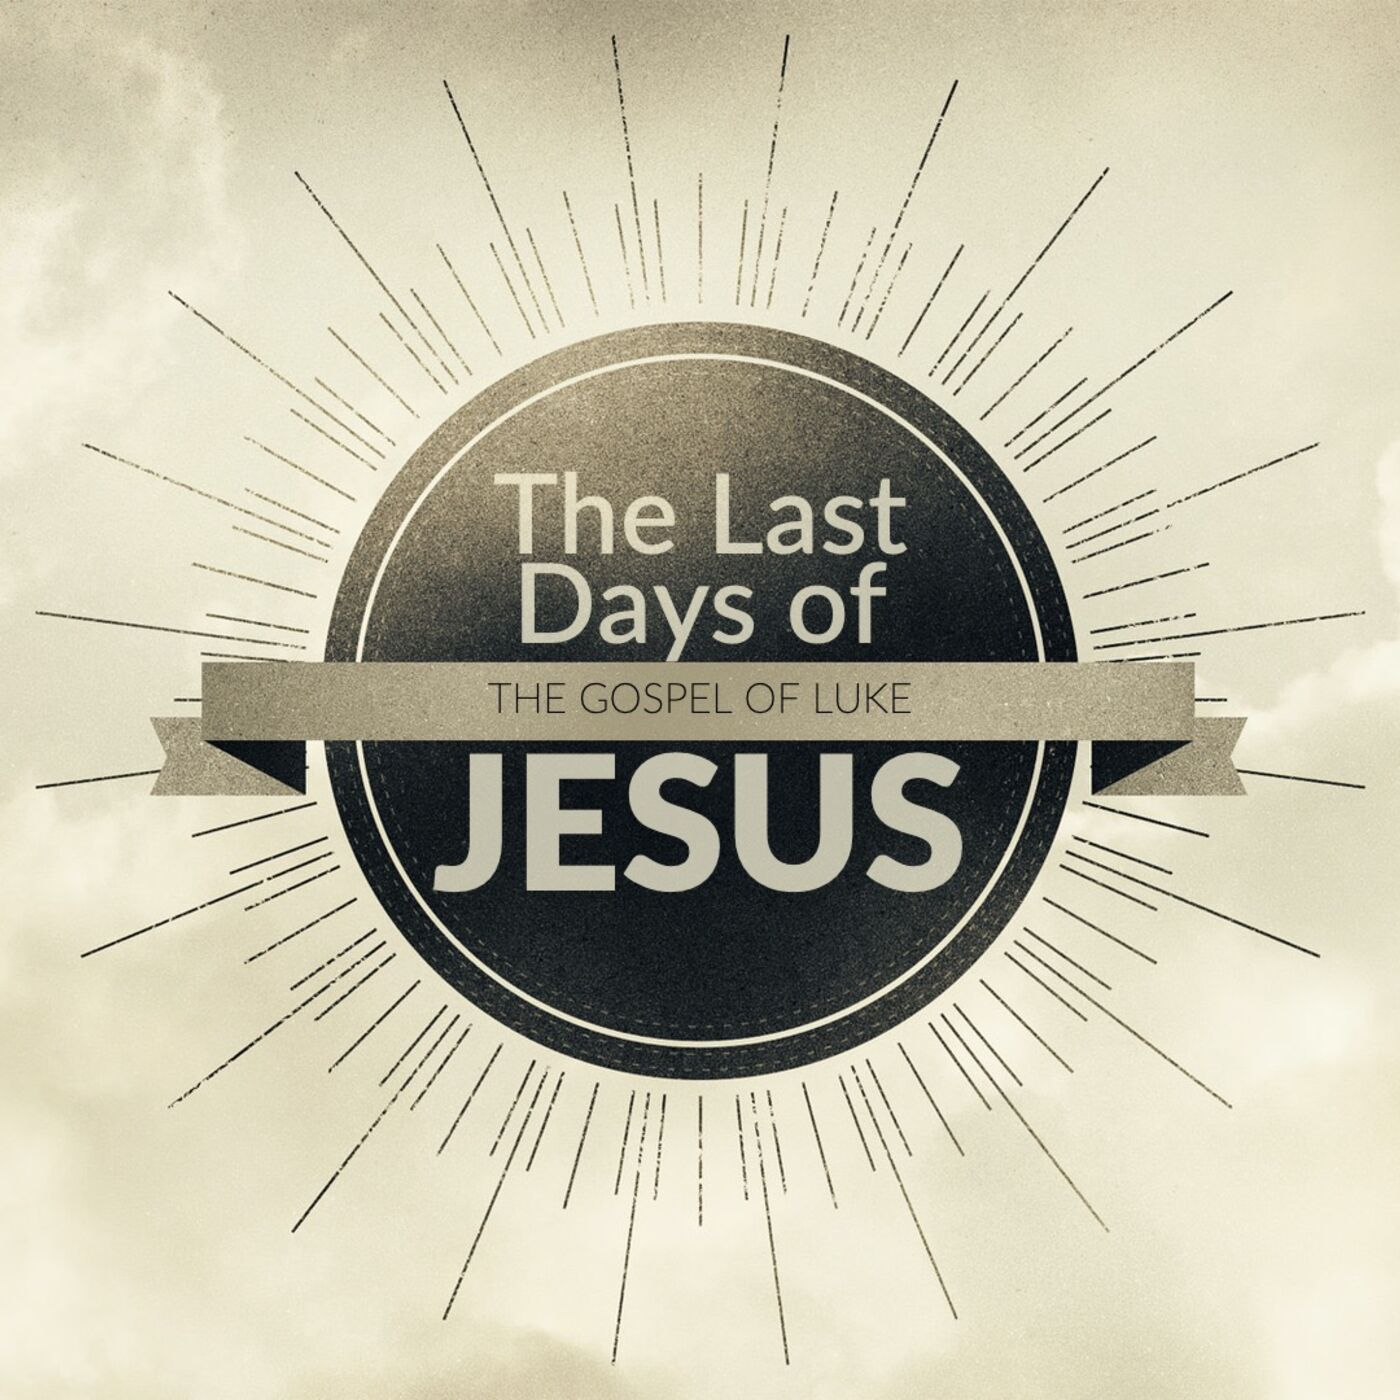 The Last Days of Jesus: The Presentation of the King (Luke 19:28-44)